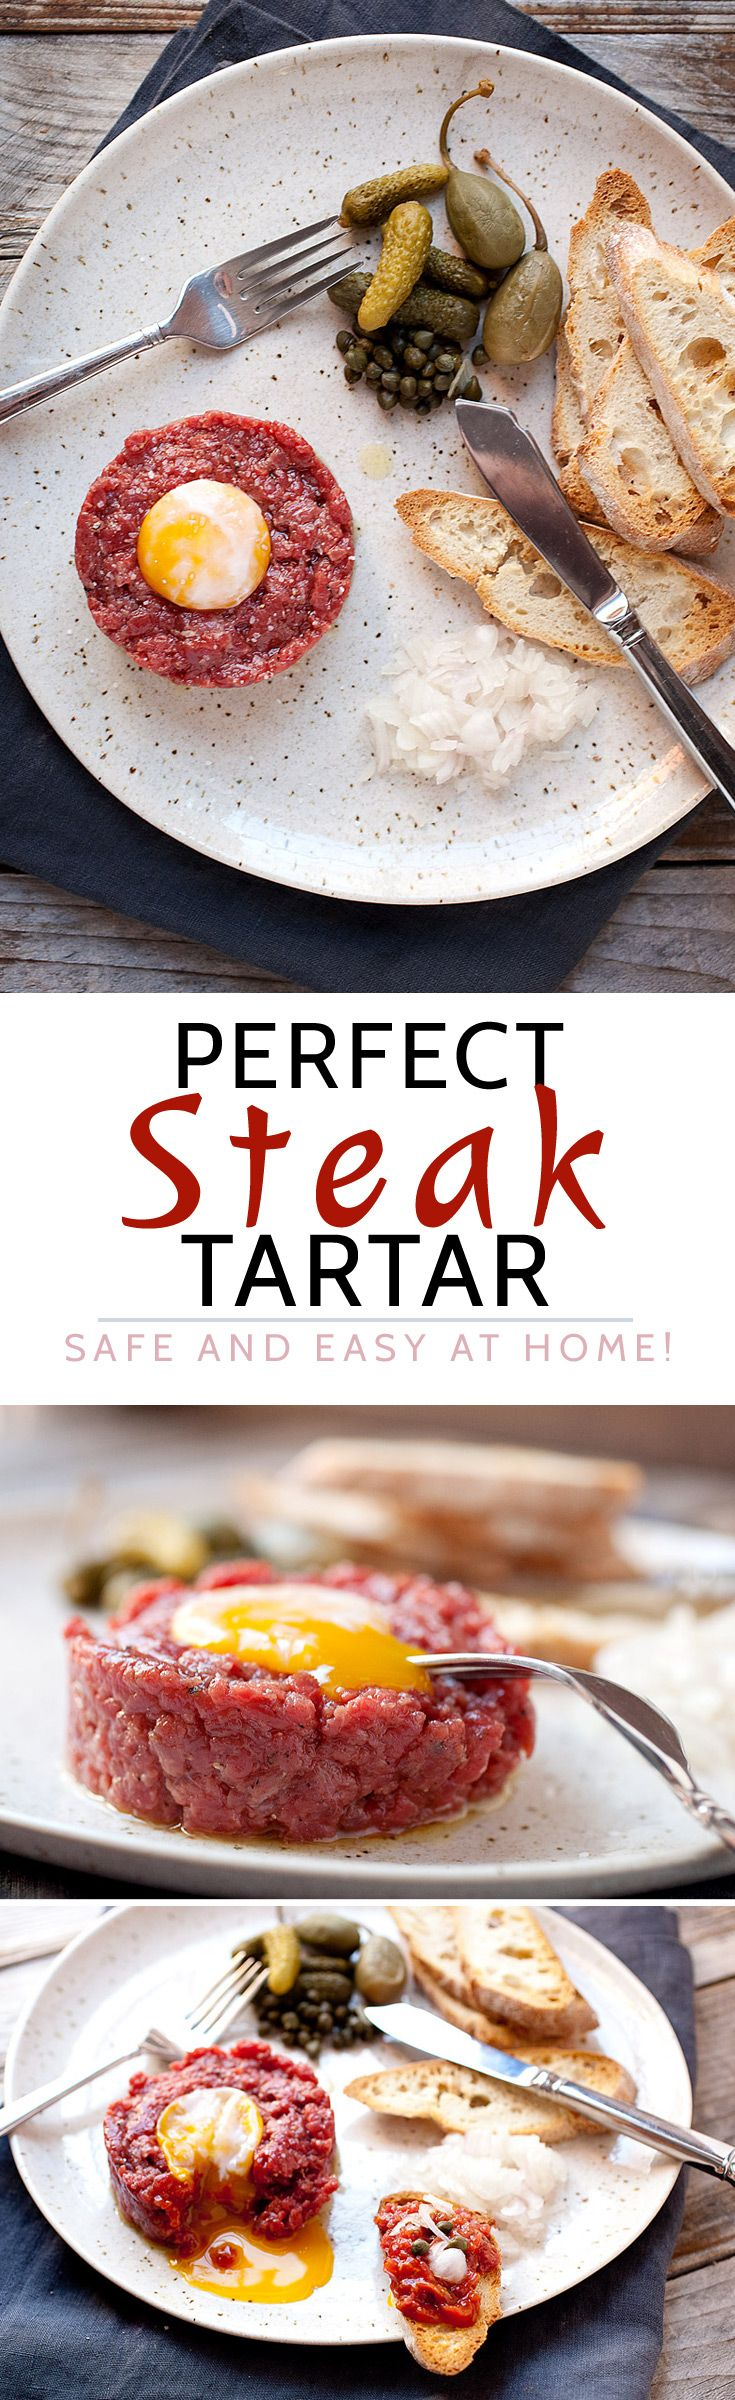 Perfect Steak Tartare at Home! Here's how to make the classic French appetizer SAFELY at home! It's really easy with a few simple tips. Stop over-paying for it in fancy restaurants!   macheesmo.com